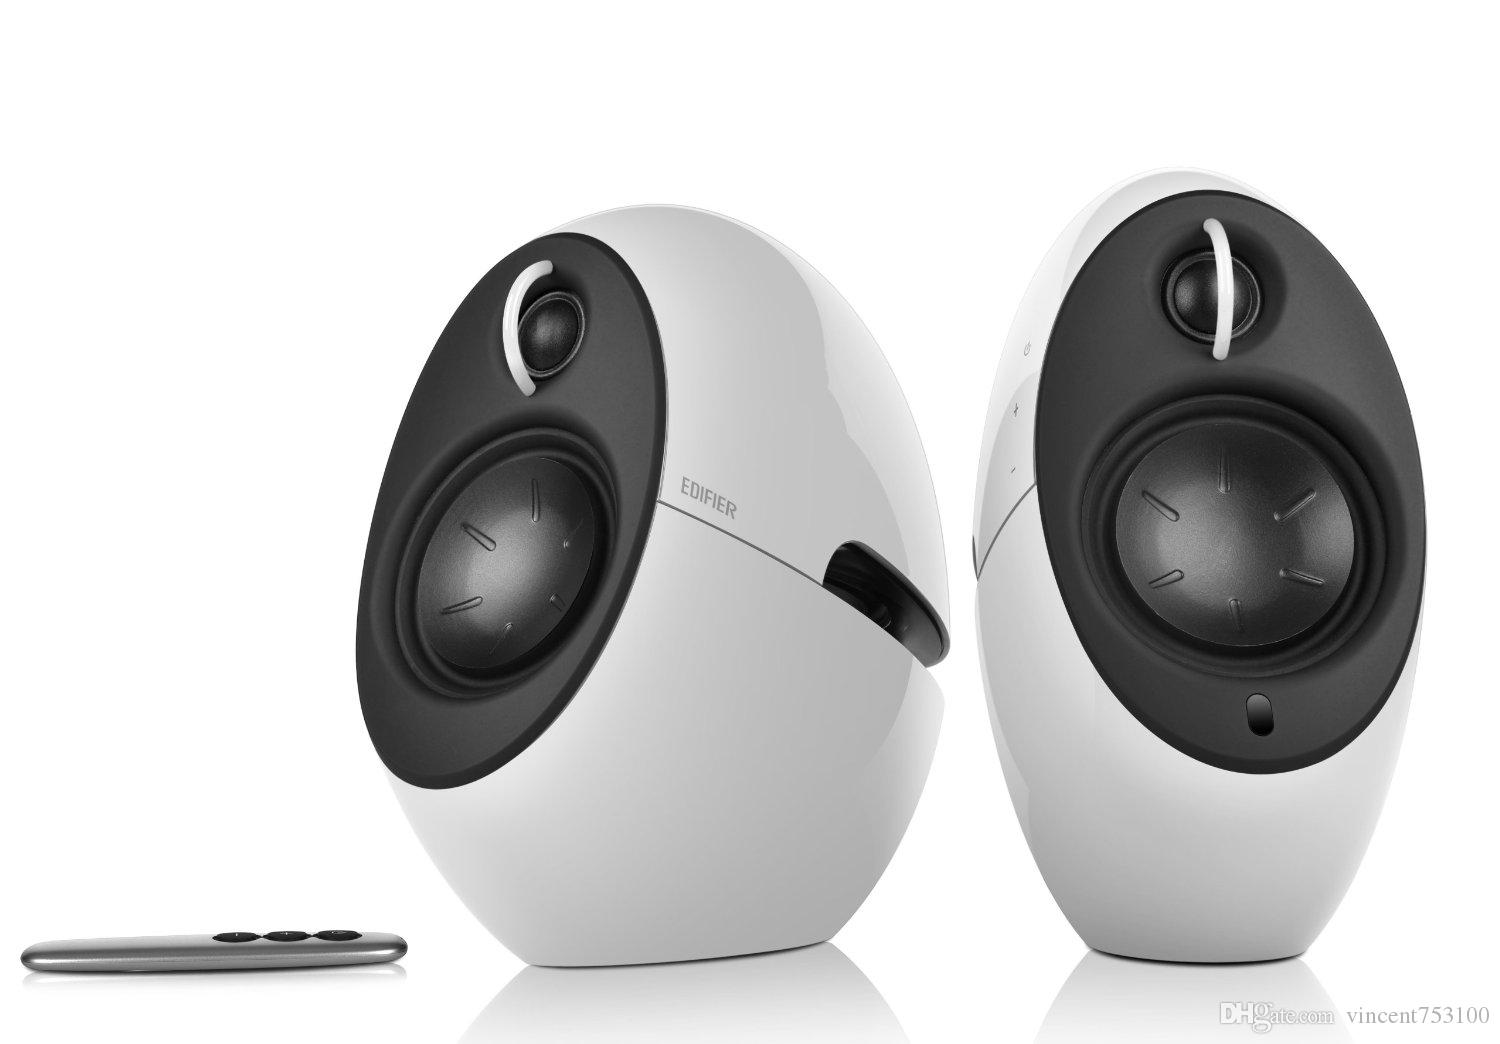 computer speakers white. luna eclipse stunning 2.0 speaker white with wireless bluetooth aux optical fiber remote control perfect computer tv home speakers e